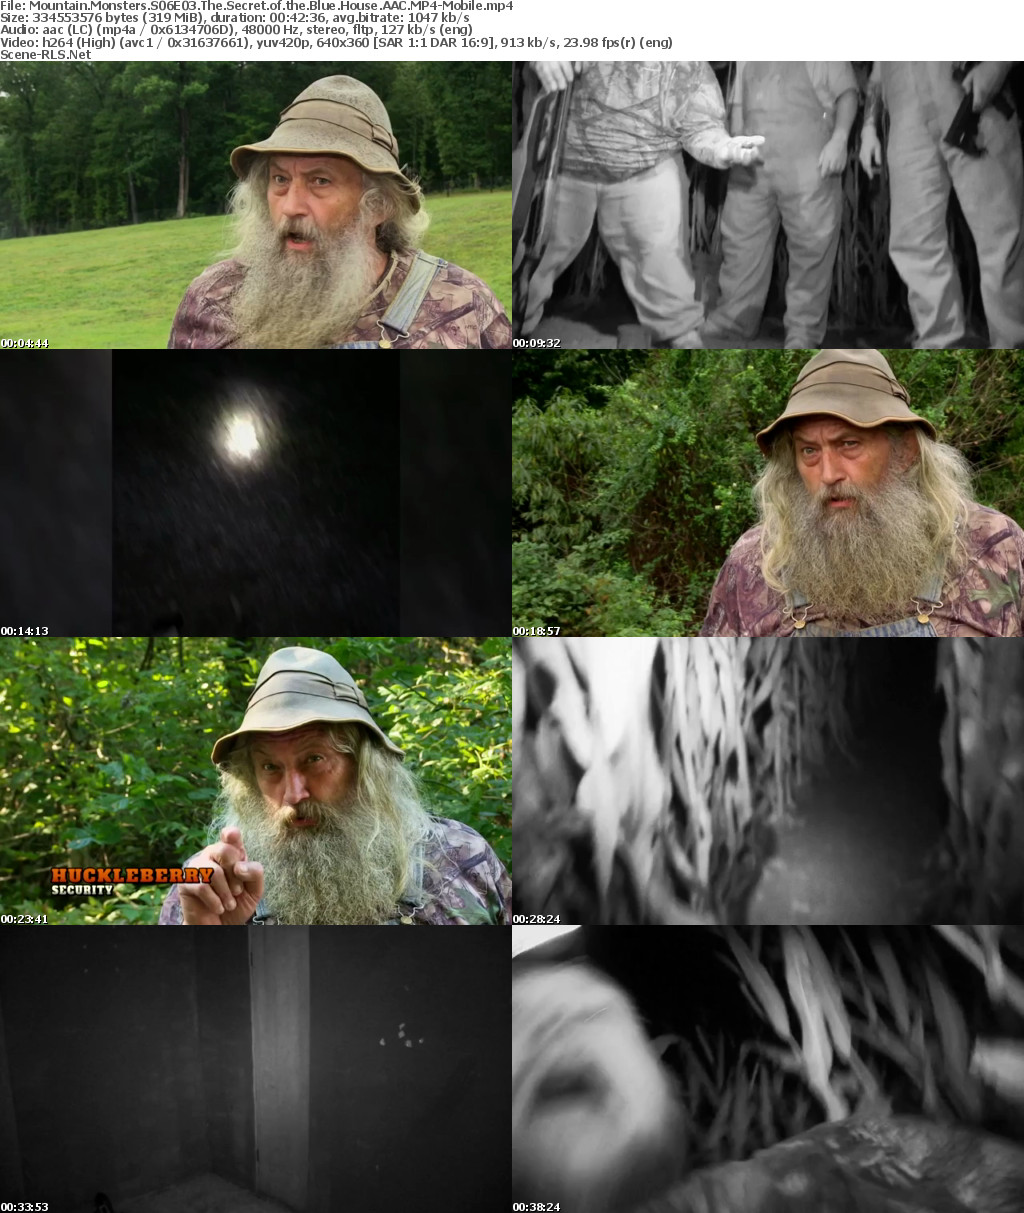 Mountain Monsters S06E03 The Secret of the Blue House WEBRip